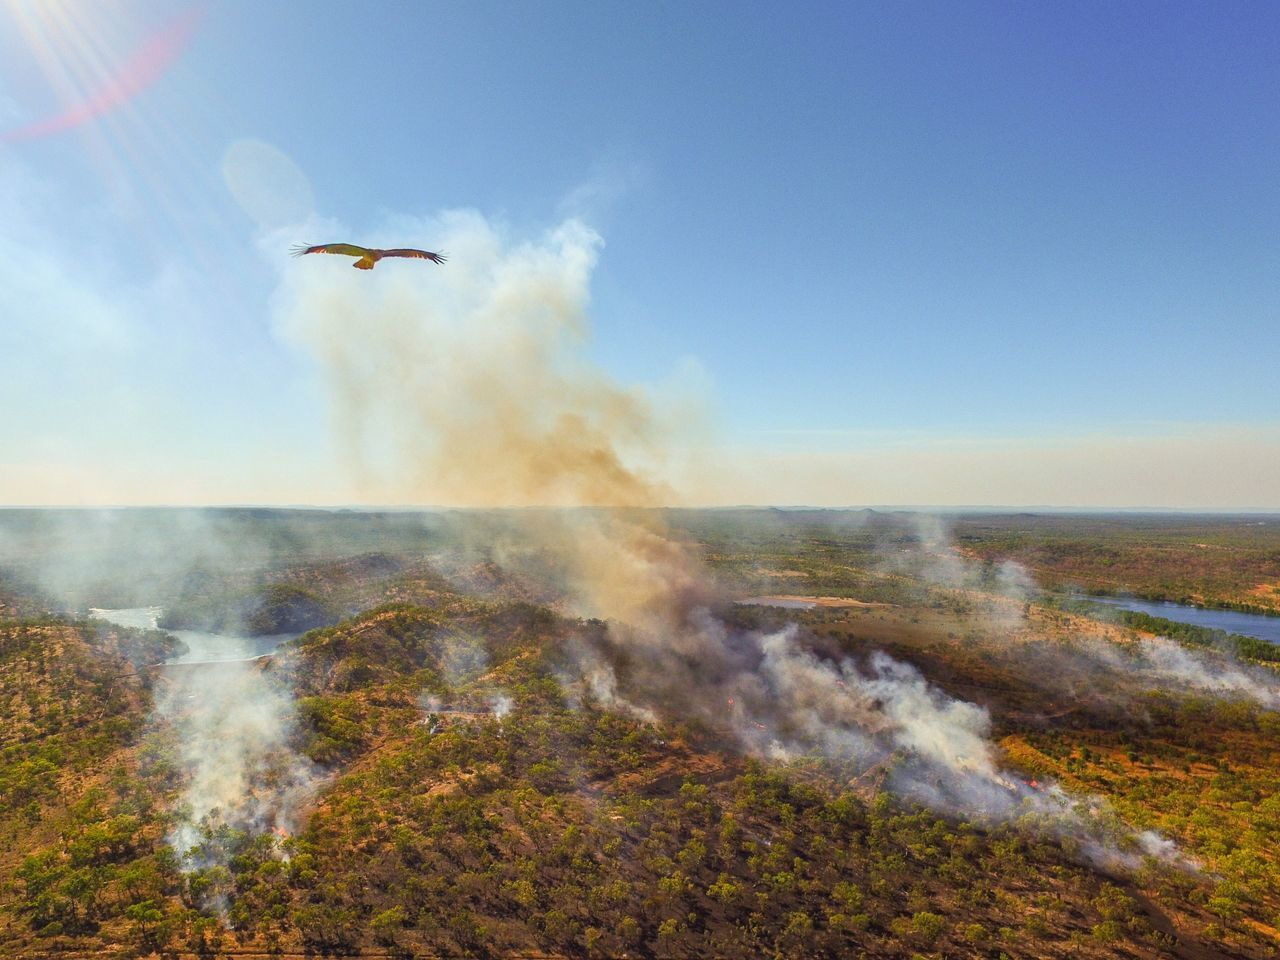 Like an eagle in the sky. Outdoors Flying Drone  Dronephotography Droneshot Drones Dronepointofview Birds Eye View Bushfire Eagle Eagle Portrait Eaglephotography Eagles Nature EyeEm Best Shots EyeEm Nature Lover EyeEmBestPics Beautiful Beautiful Nature Darwin Northern Territory Australia Australian Landscape Australian Outback Australian Birds First Eyeem Photo